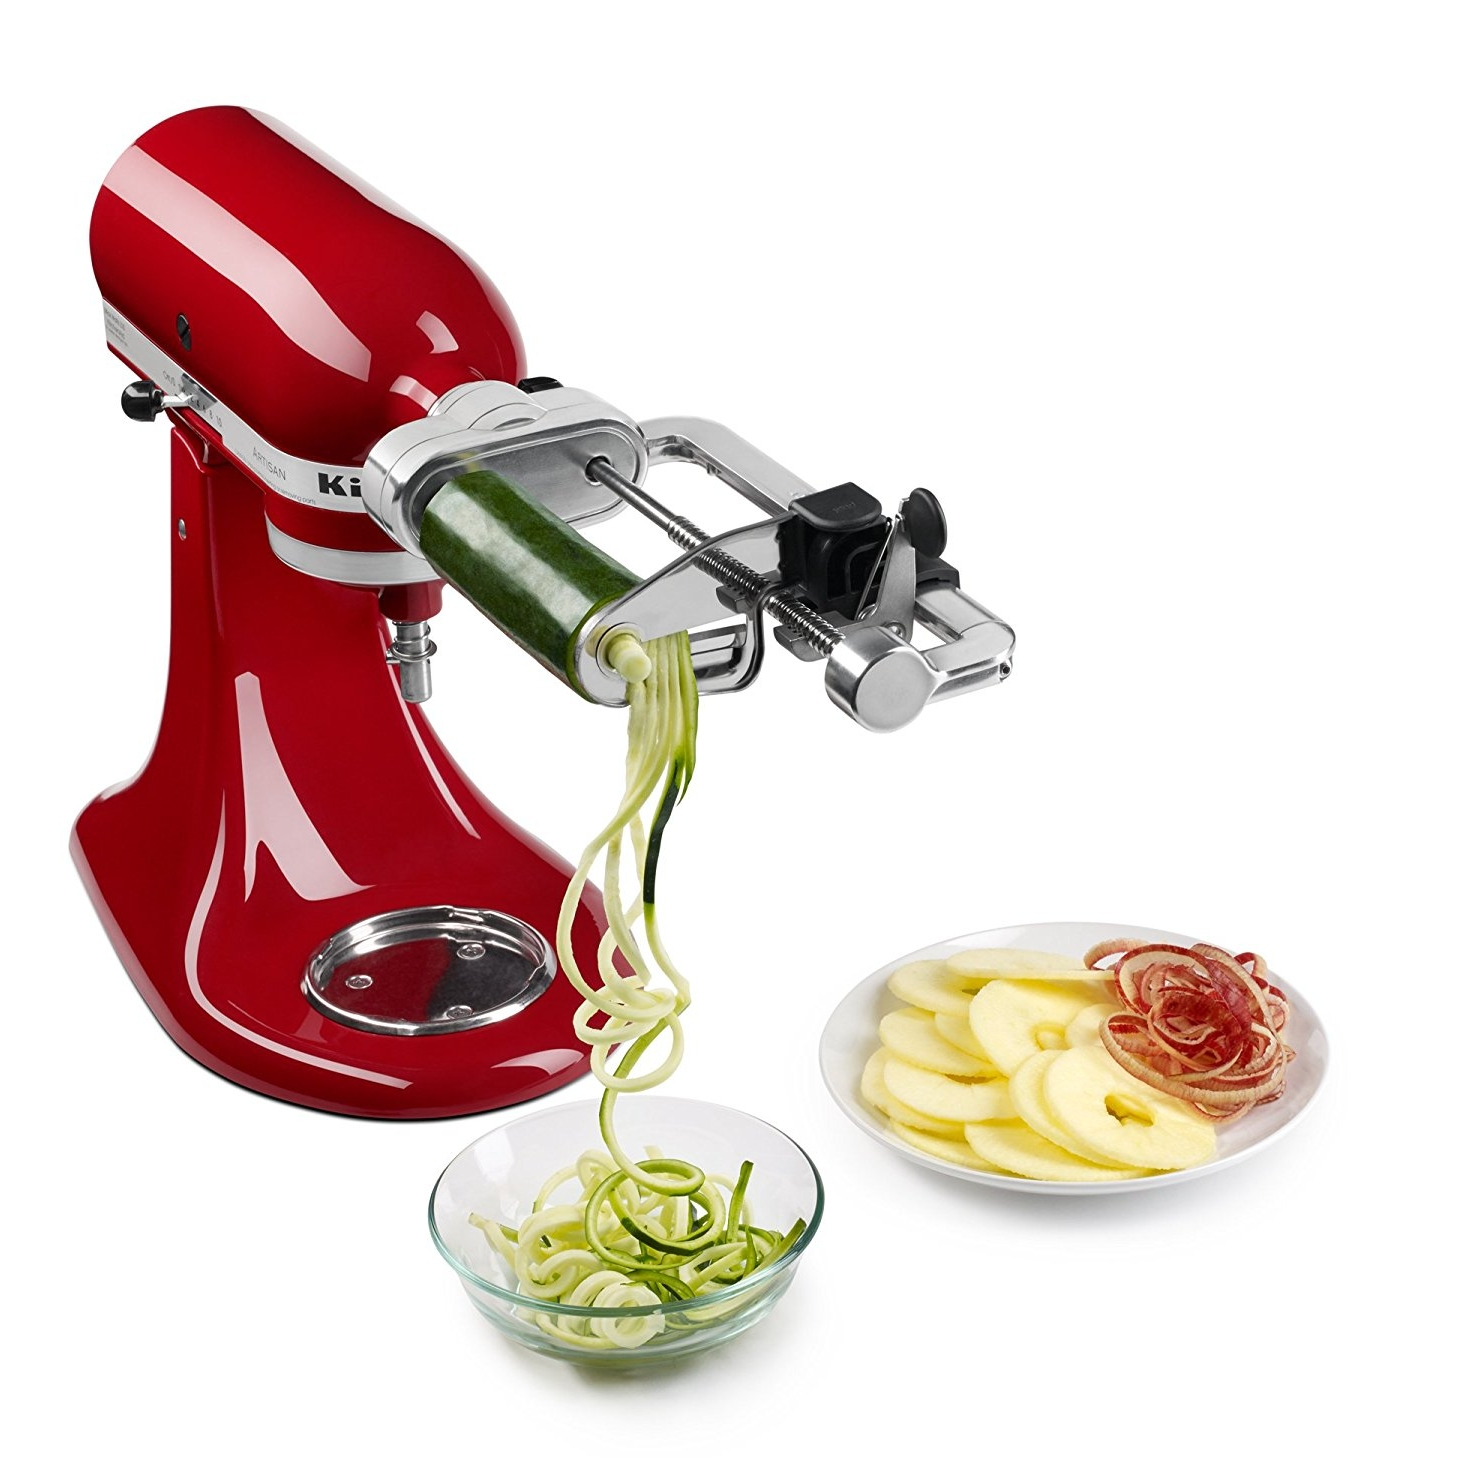 KitchenAid Spiralizer Attachment -